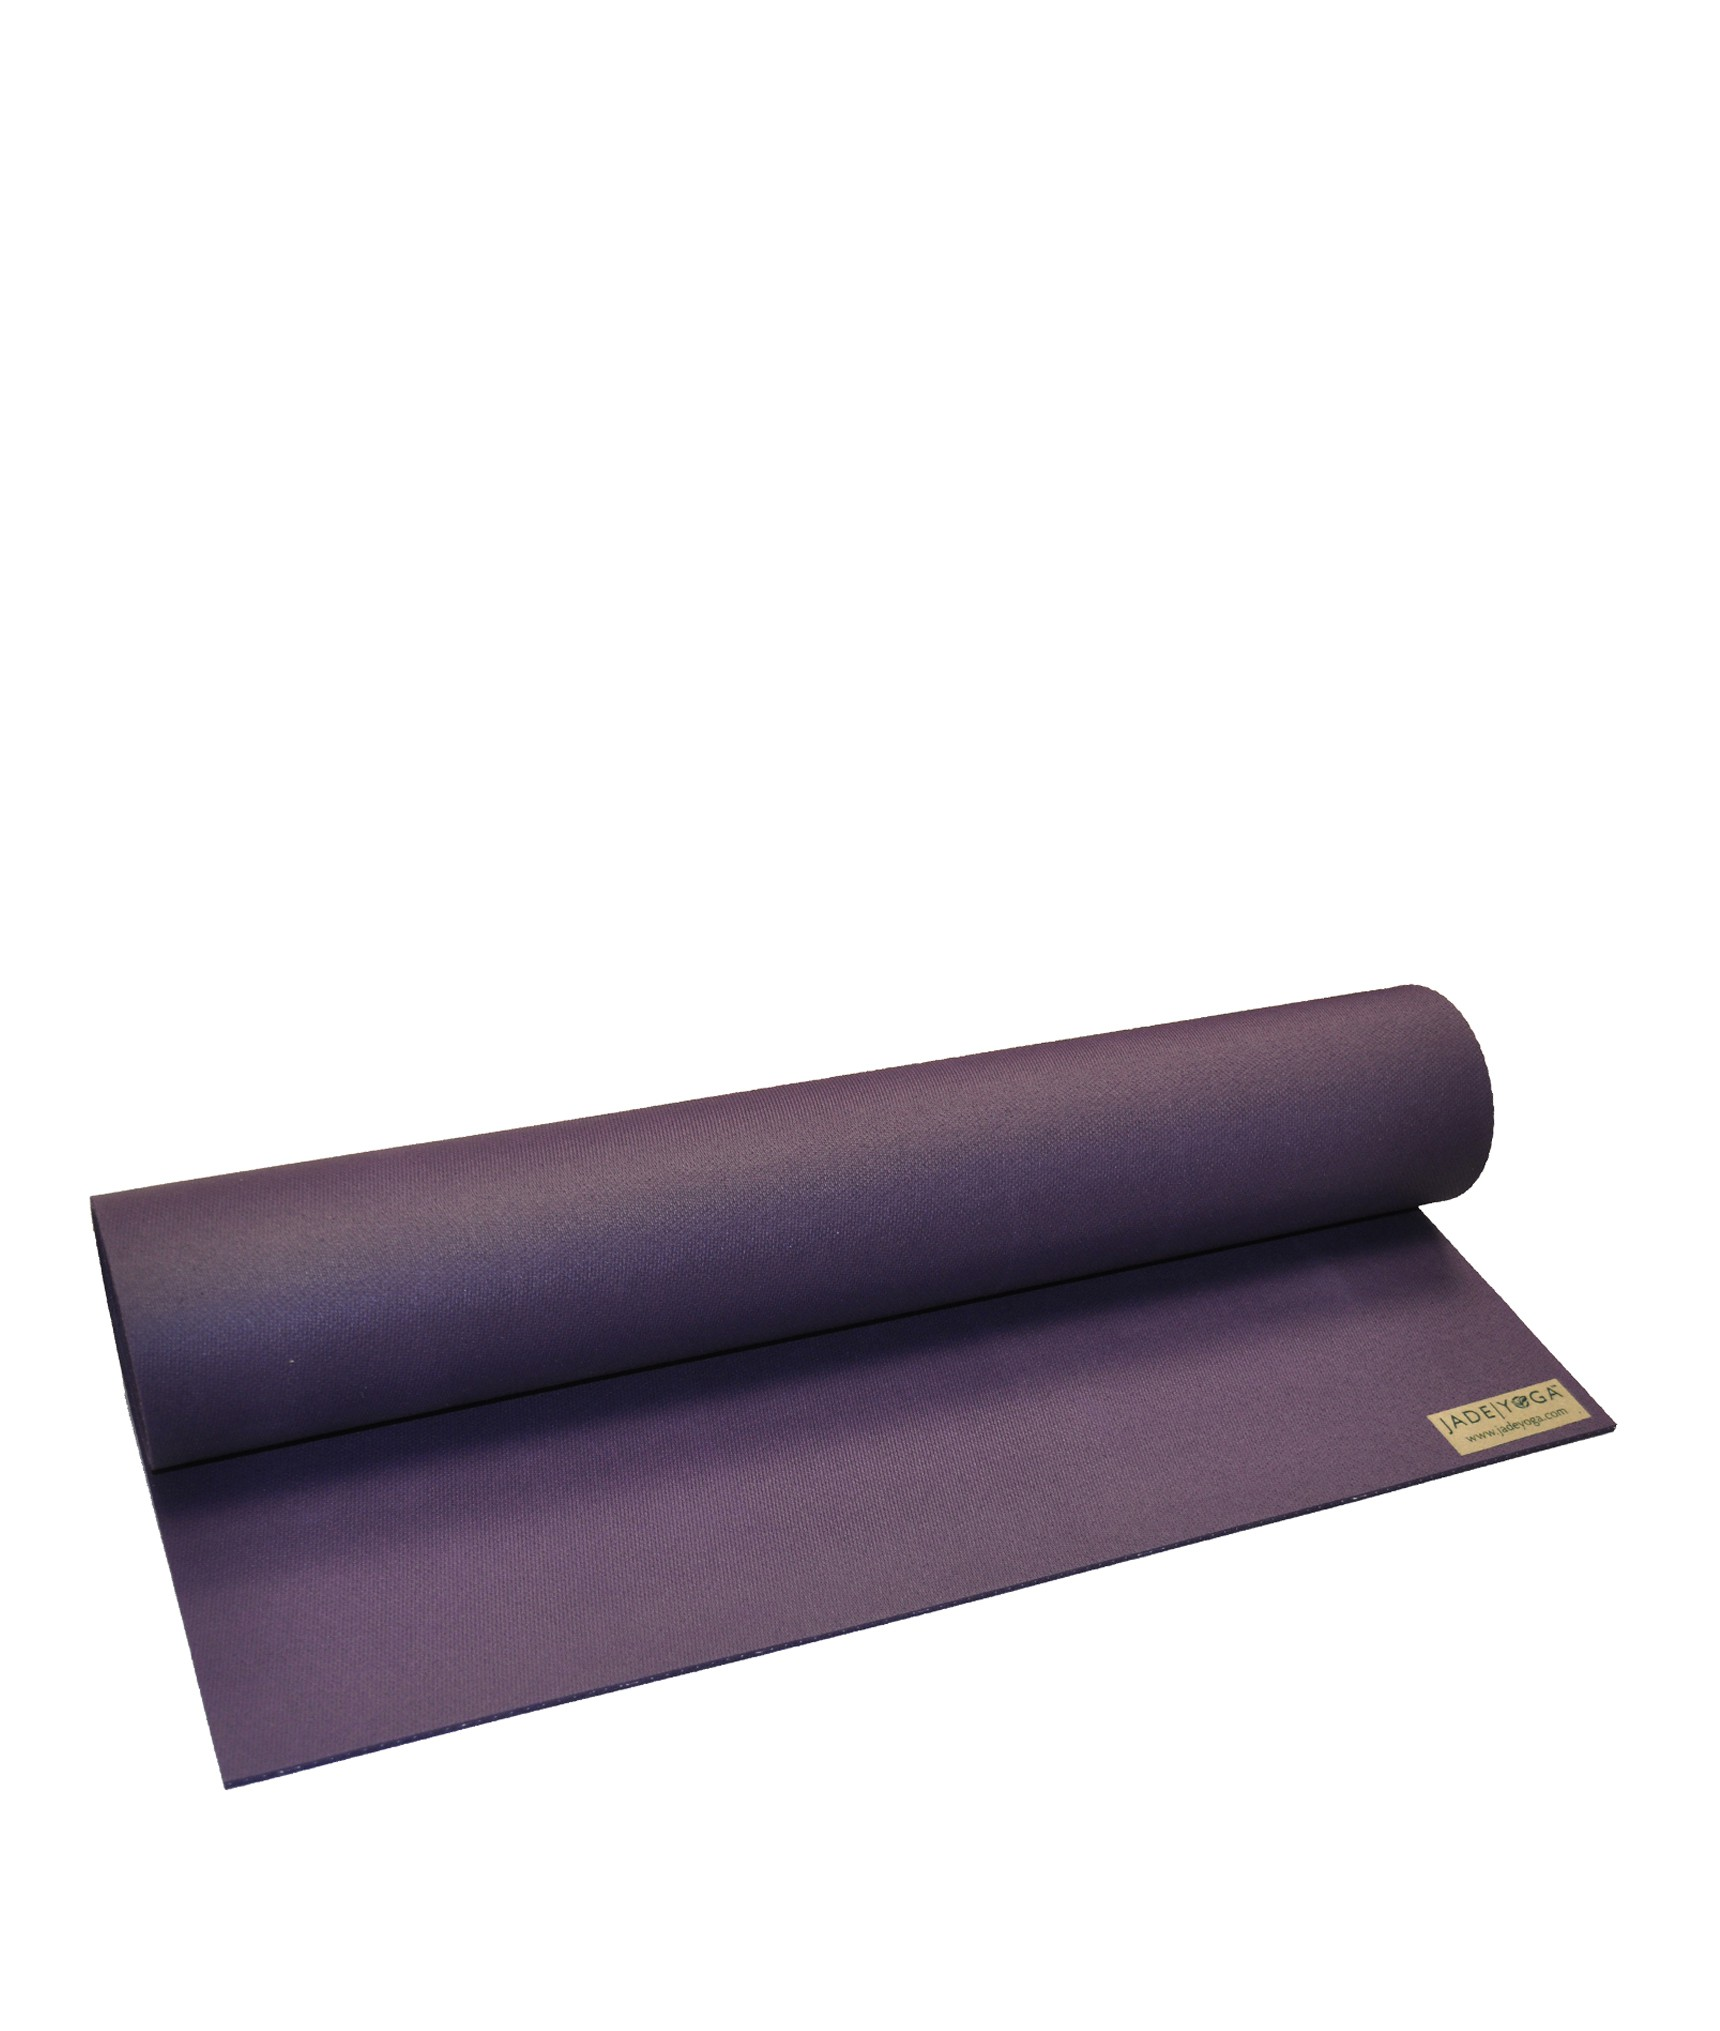 of picture gaiam purple towel travel ca stay yoga mat green trim with put